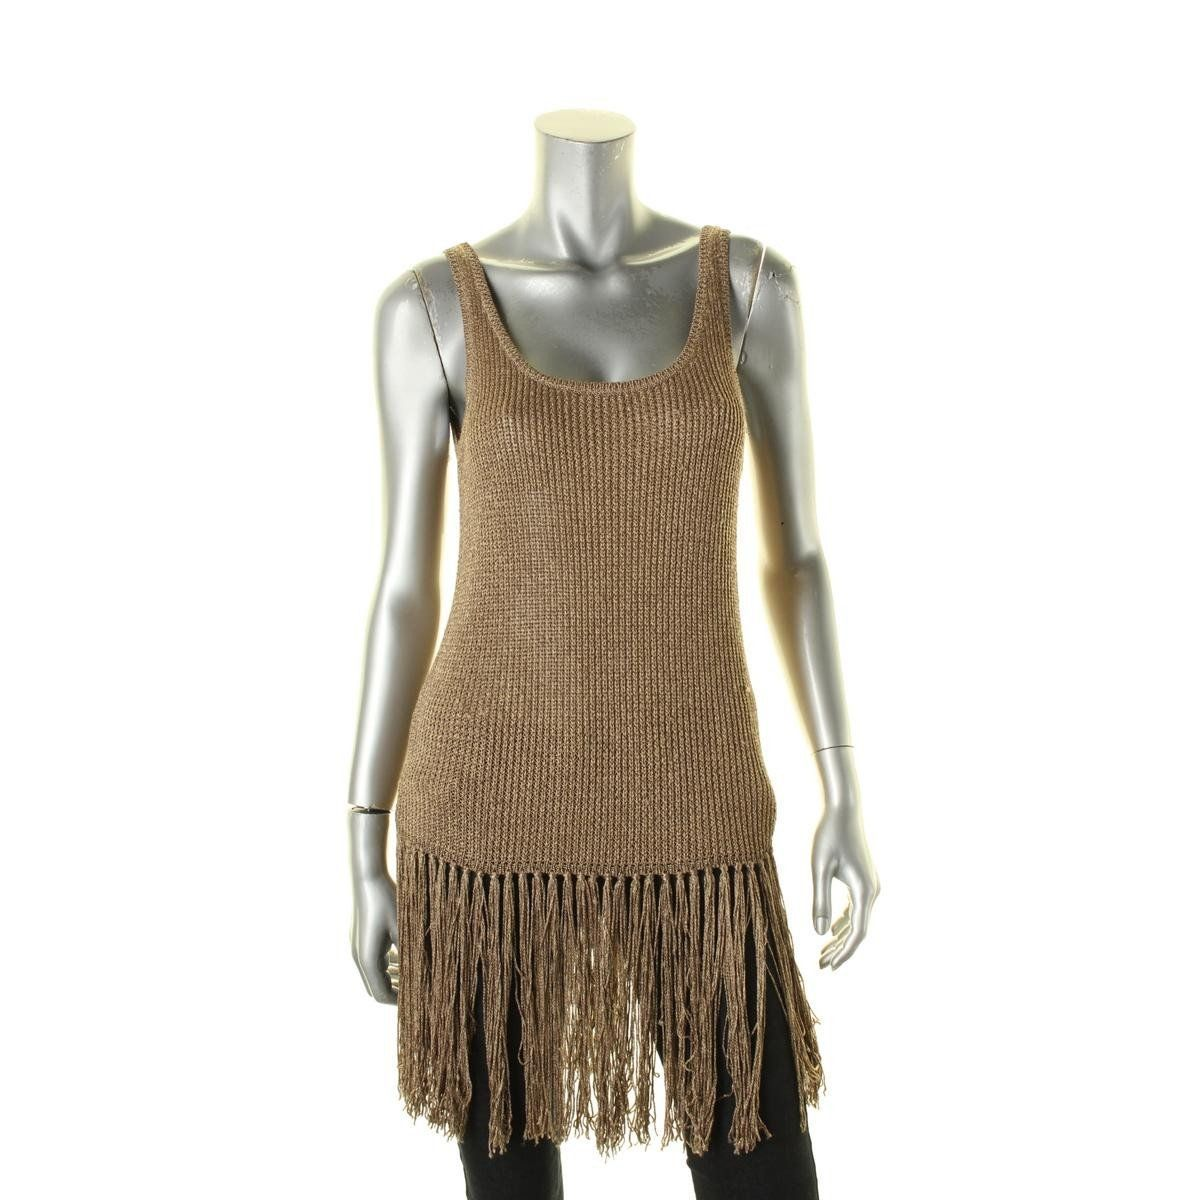 Polo Ralph Lauren Womens Metallic Fringe Tank Top Sweater